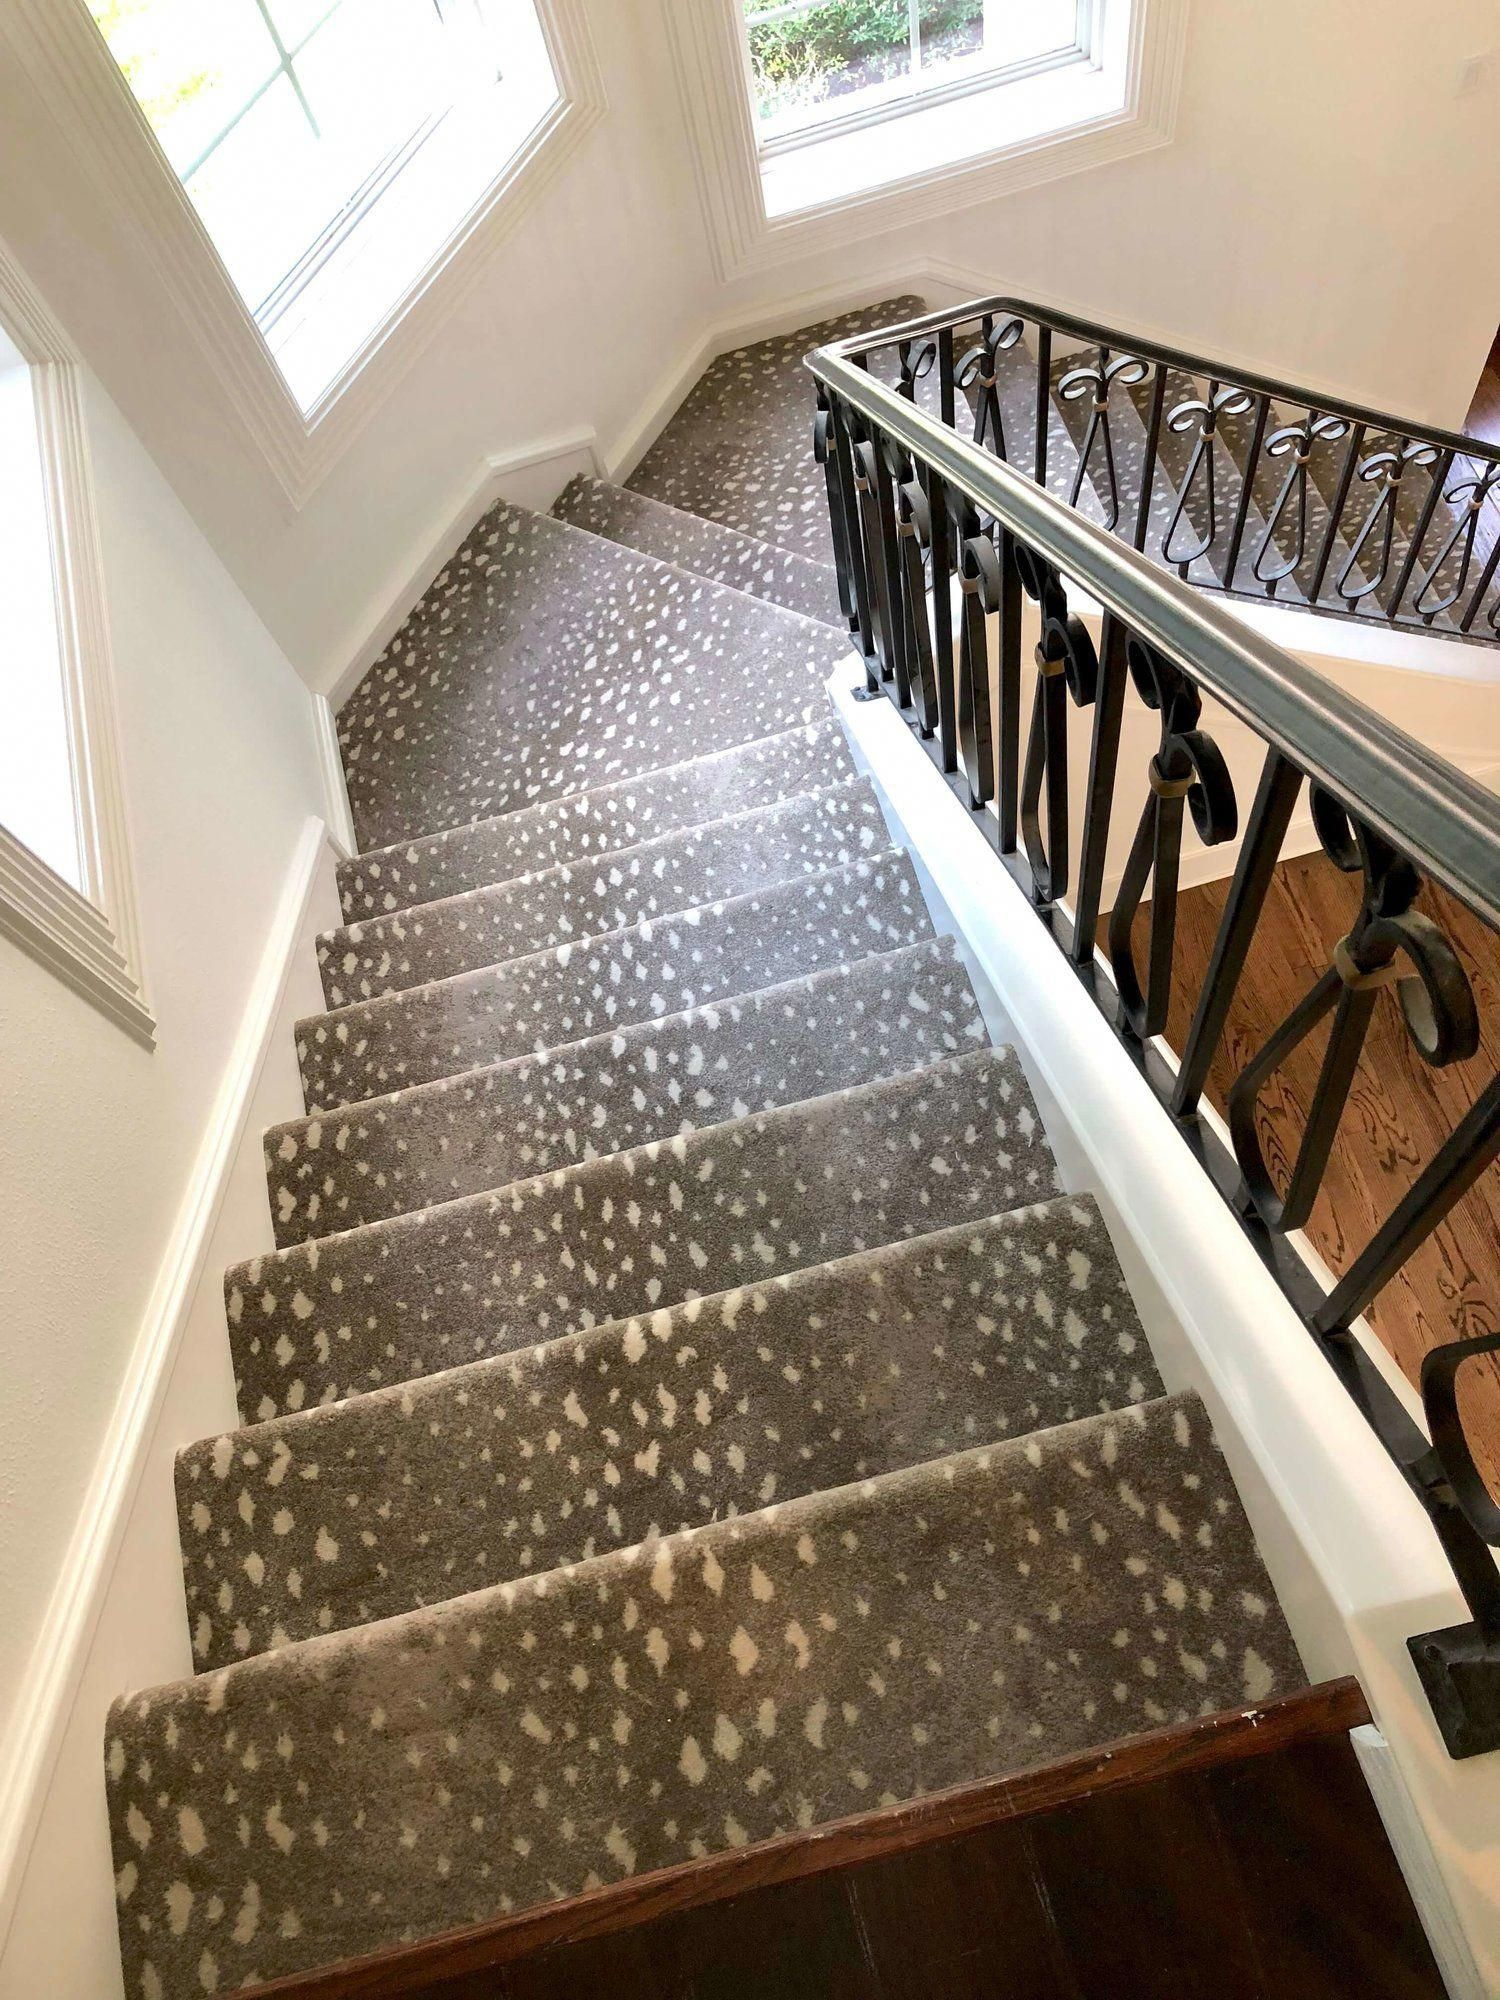 Antelope Pattern Carpet From Stark On The Stairs Designer Carla   Stair Carpets For Sale   Wool   Flooring   Skid   Anderson Tuftex   Mallorca